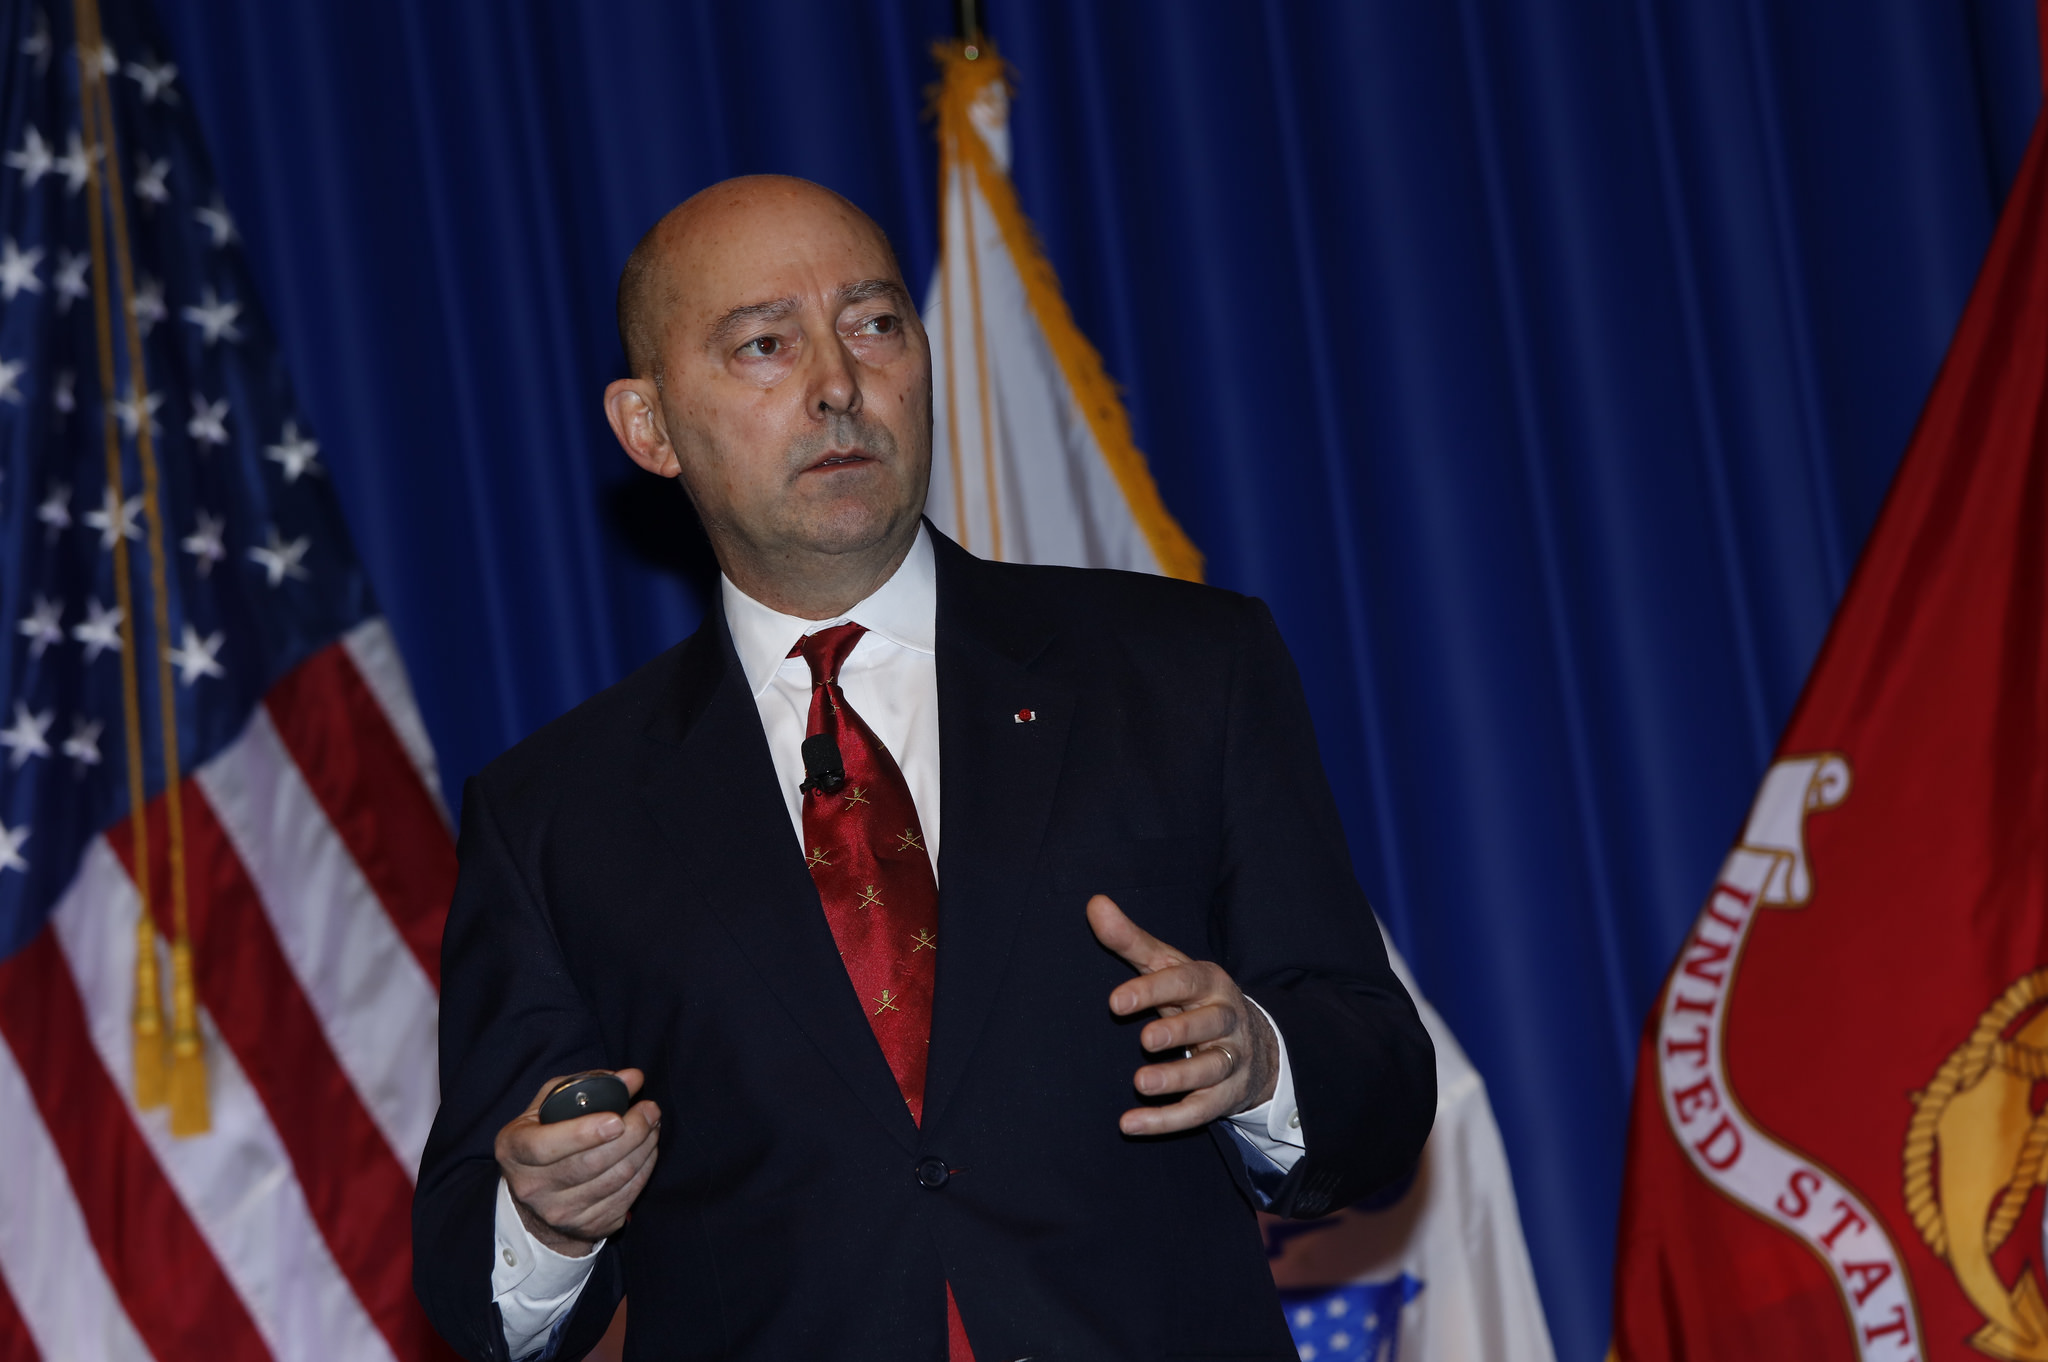 Former NATO commander James Stavridis speaking at West 2016 on Feb. 18, 2016. U.S. Naval Institute Photo